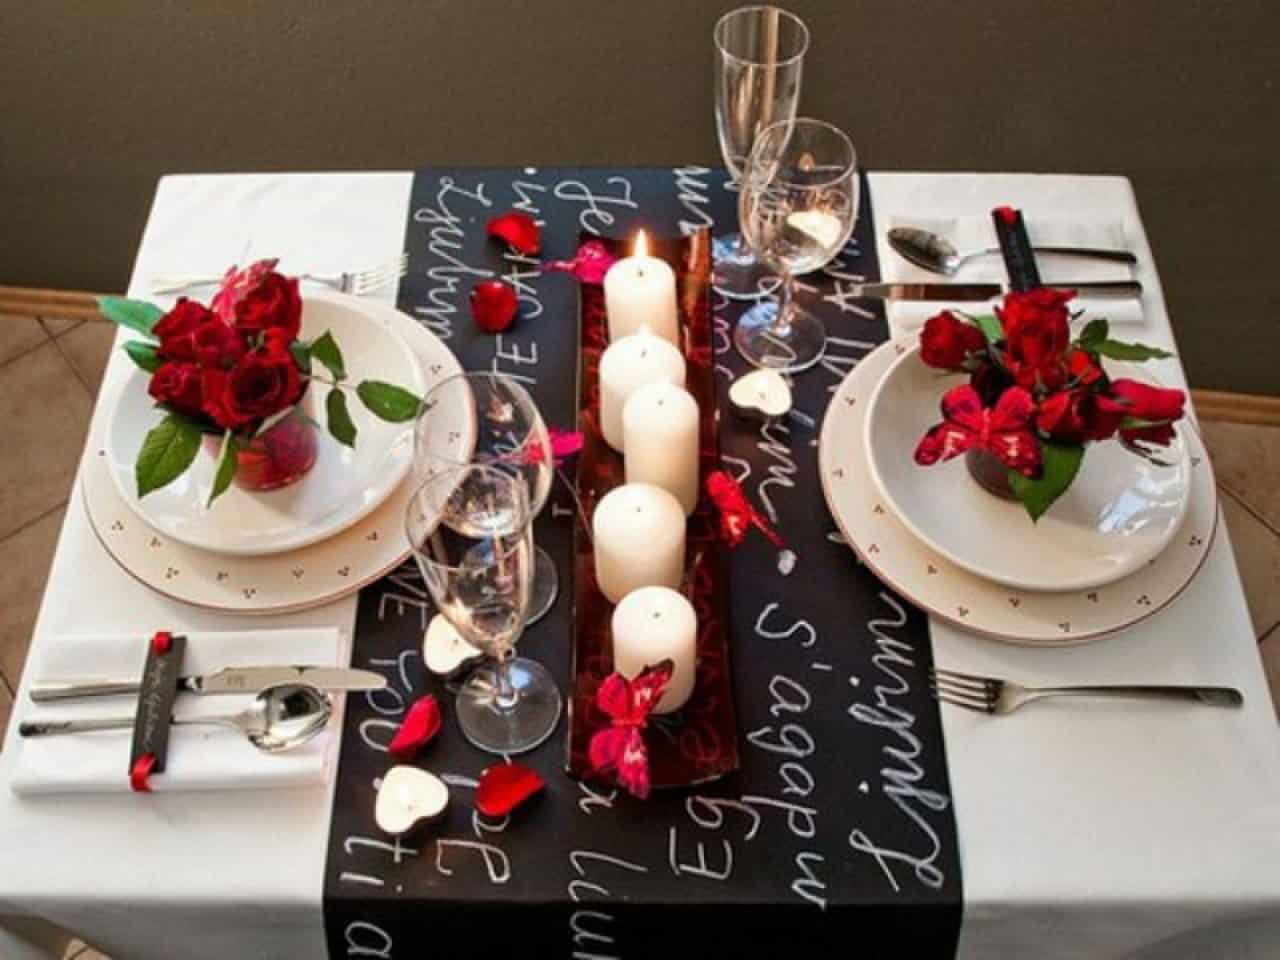 valentines day dinner valentine day romantic dinner table setting for two 7d46a0f35e4e6fda